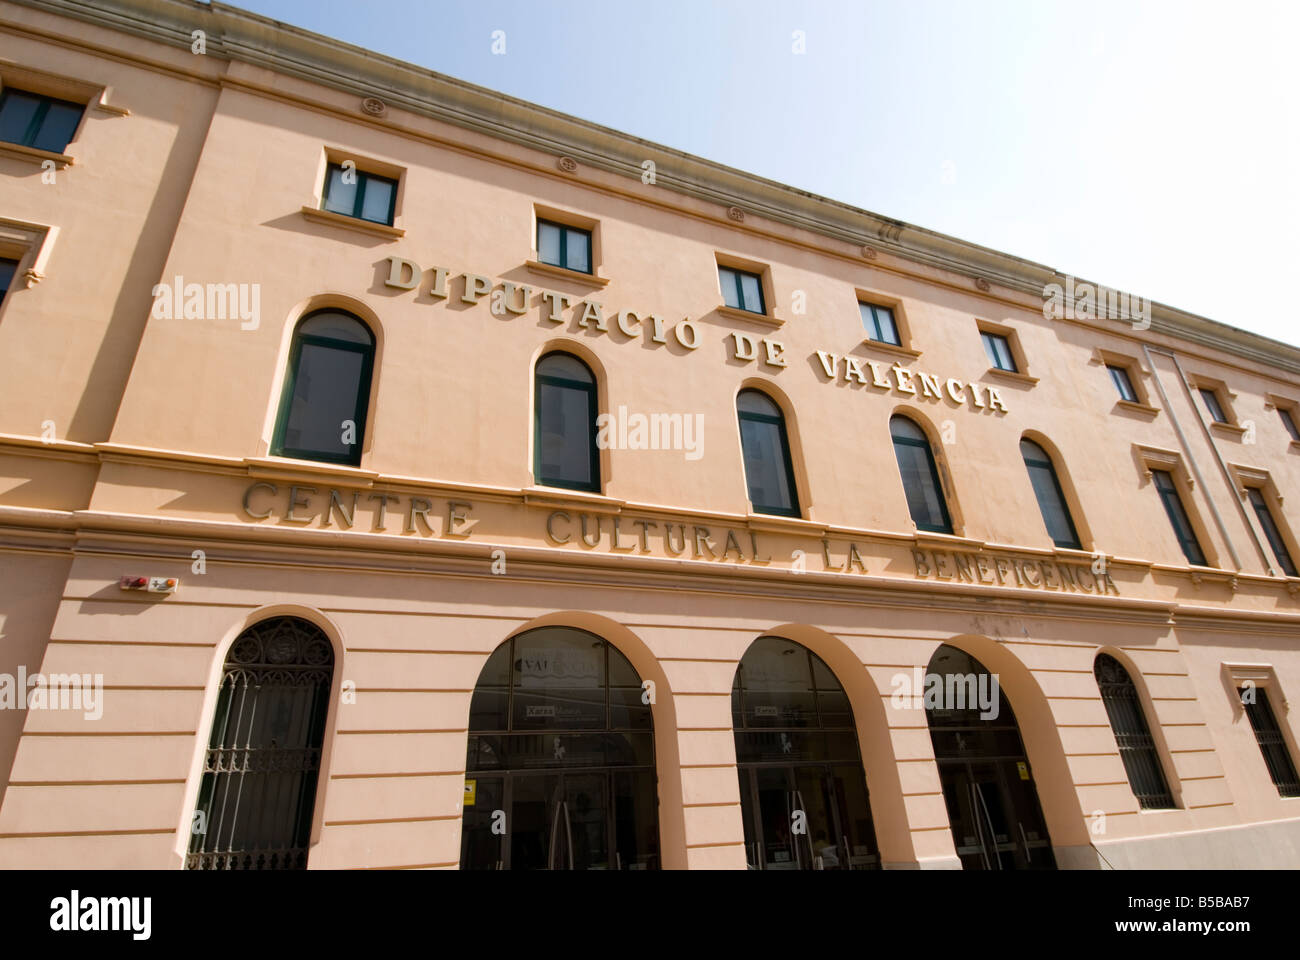 Prehistoric and Ethnology Museum building in Valencia Spain - Stock Image